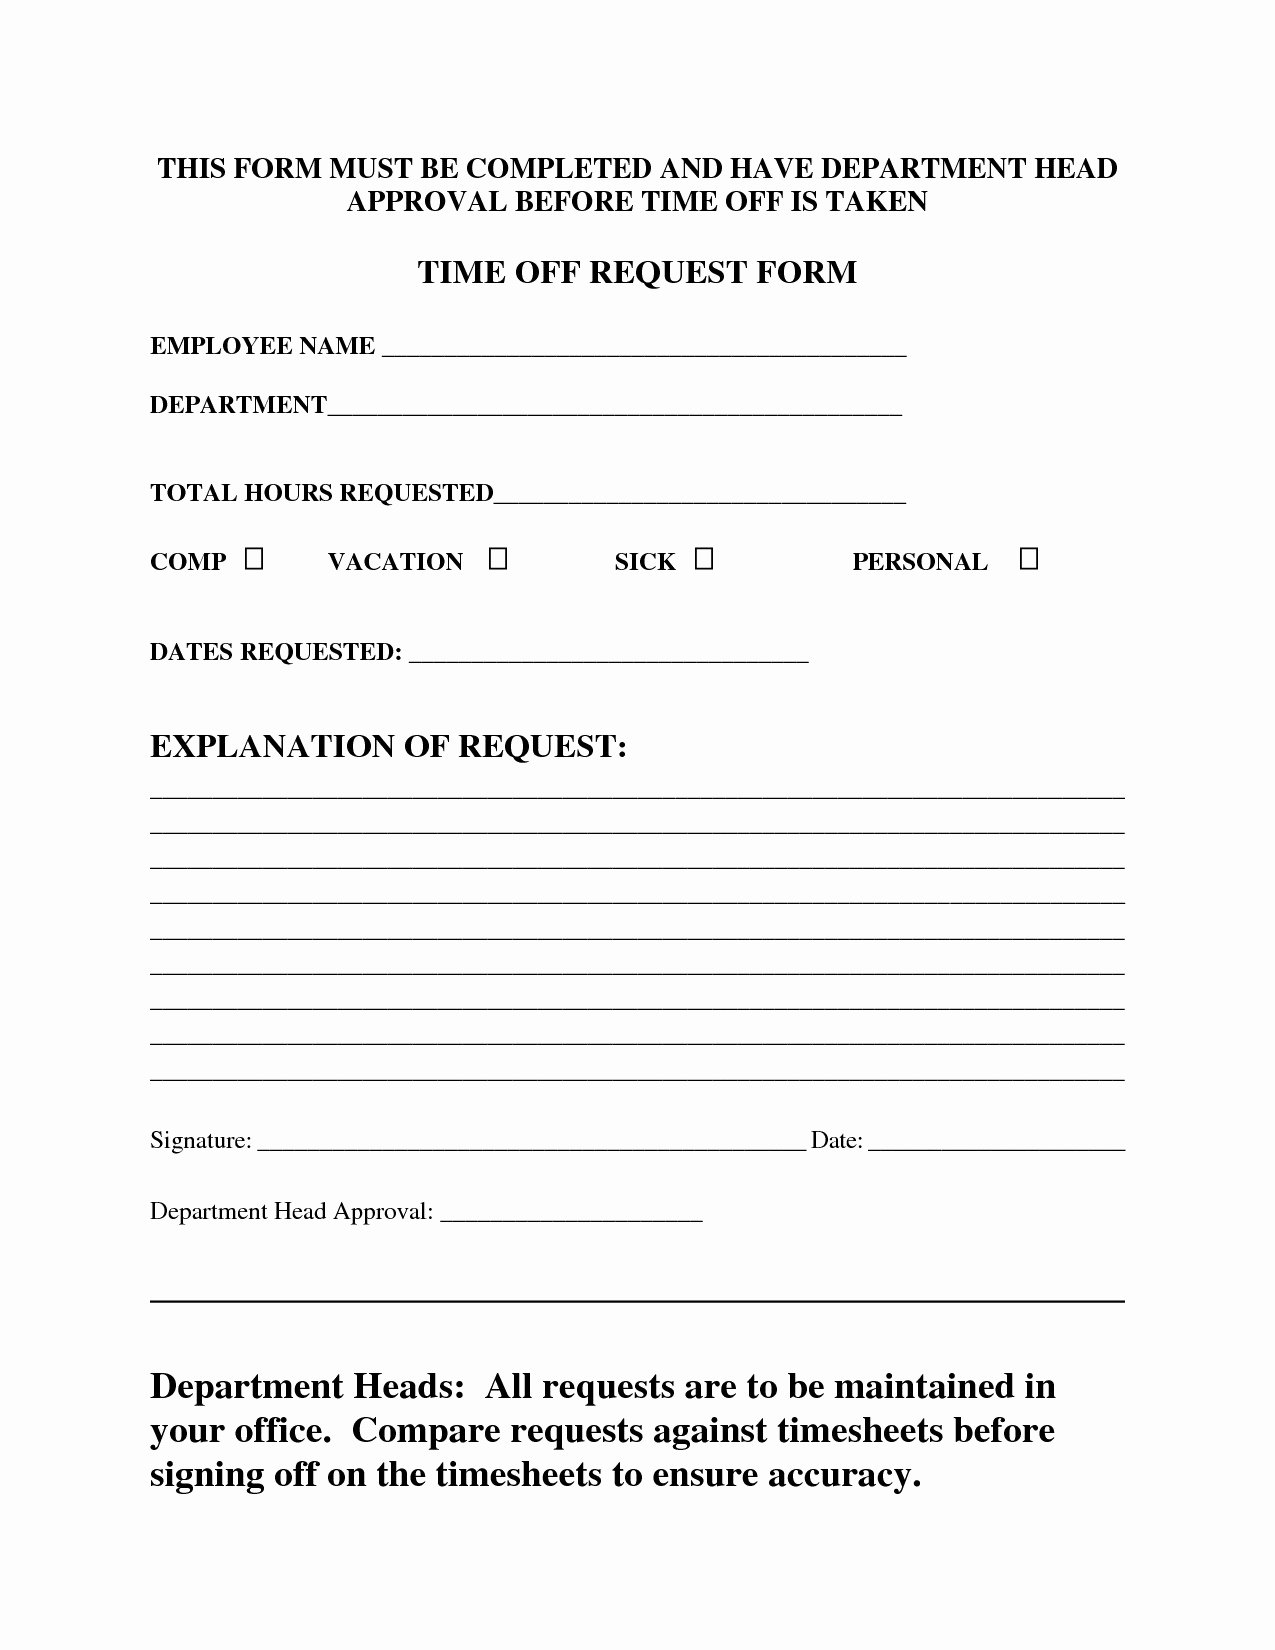 Pto Request form Template Unique Time F Request form Templates